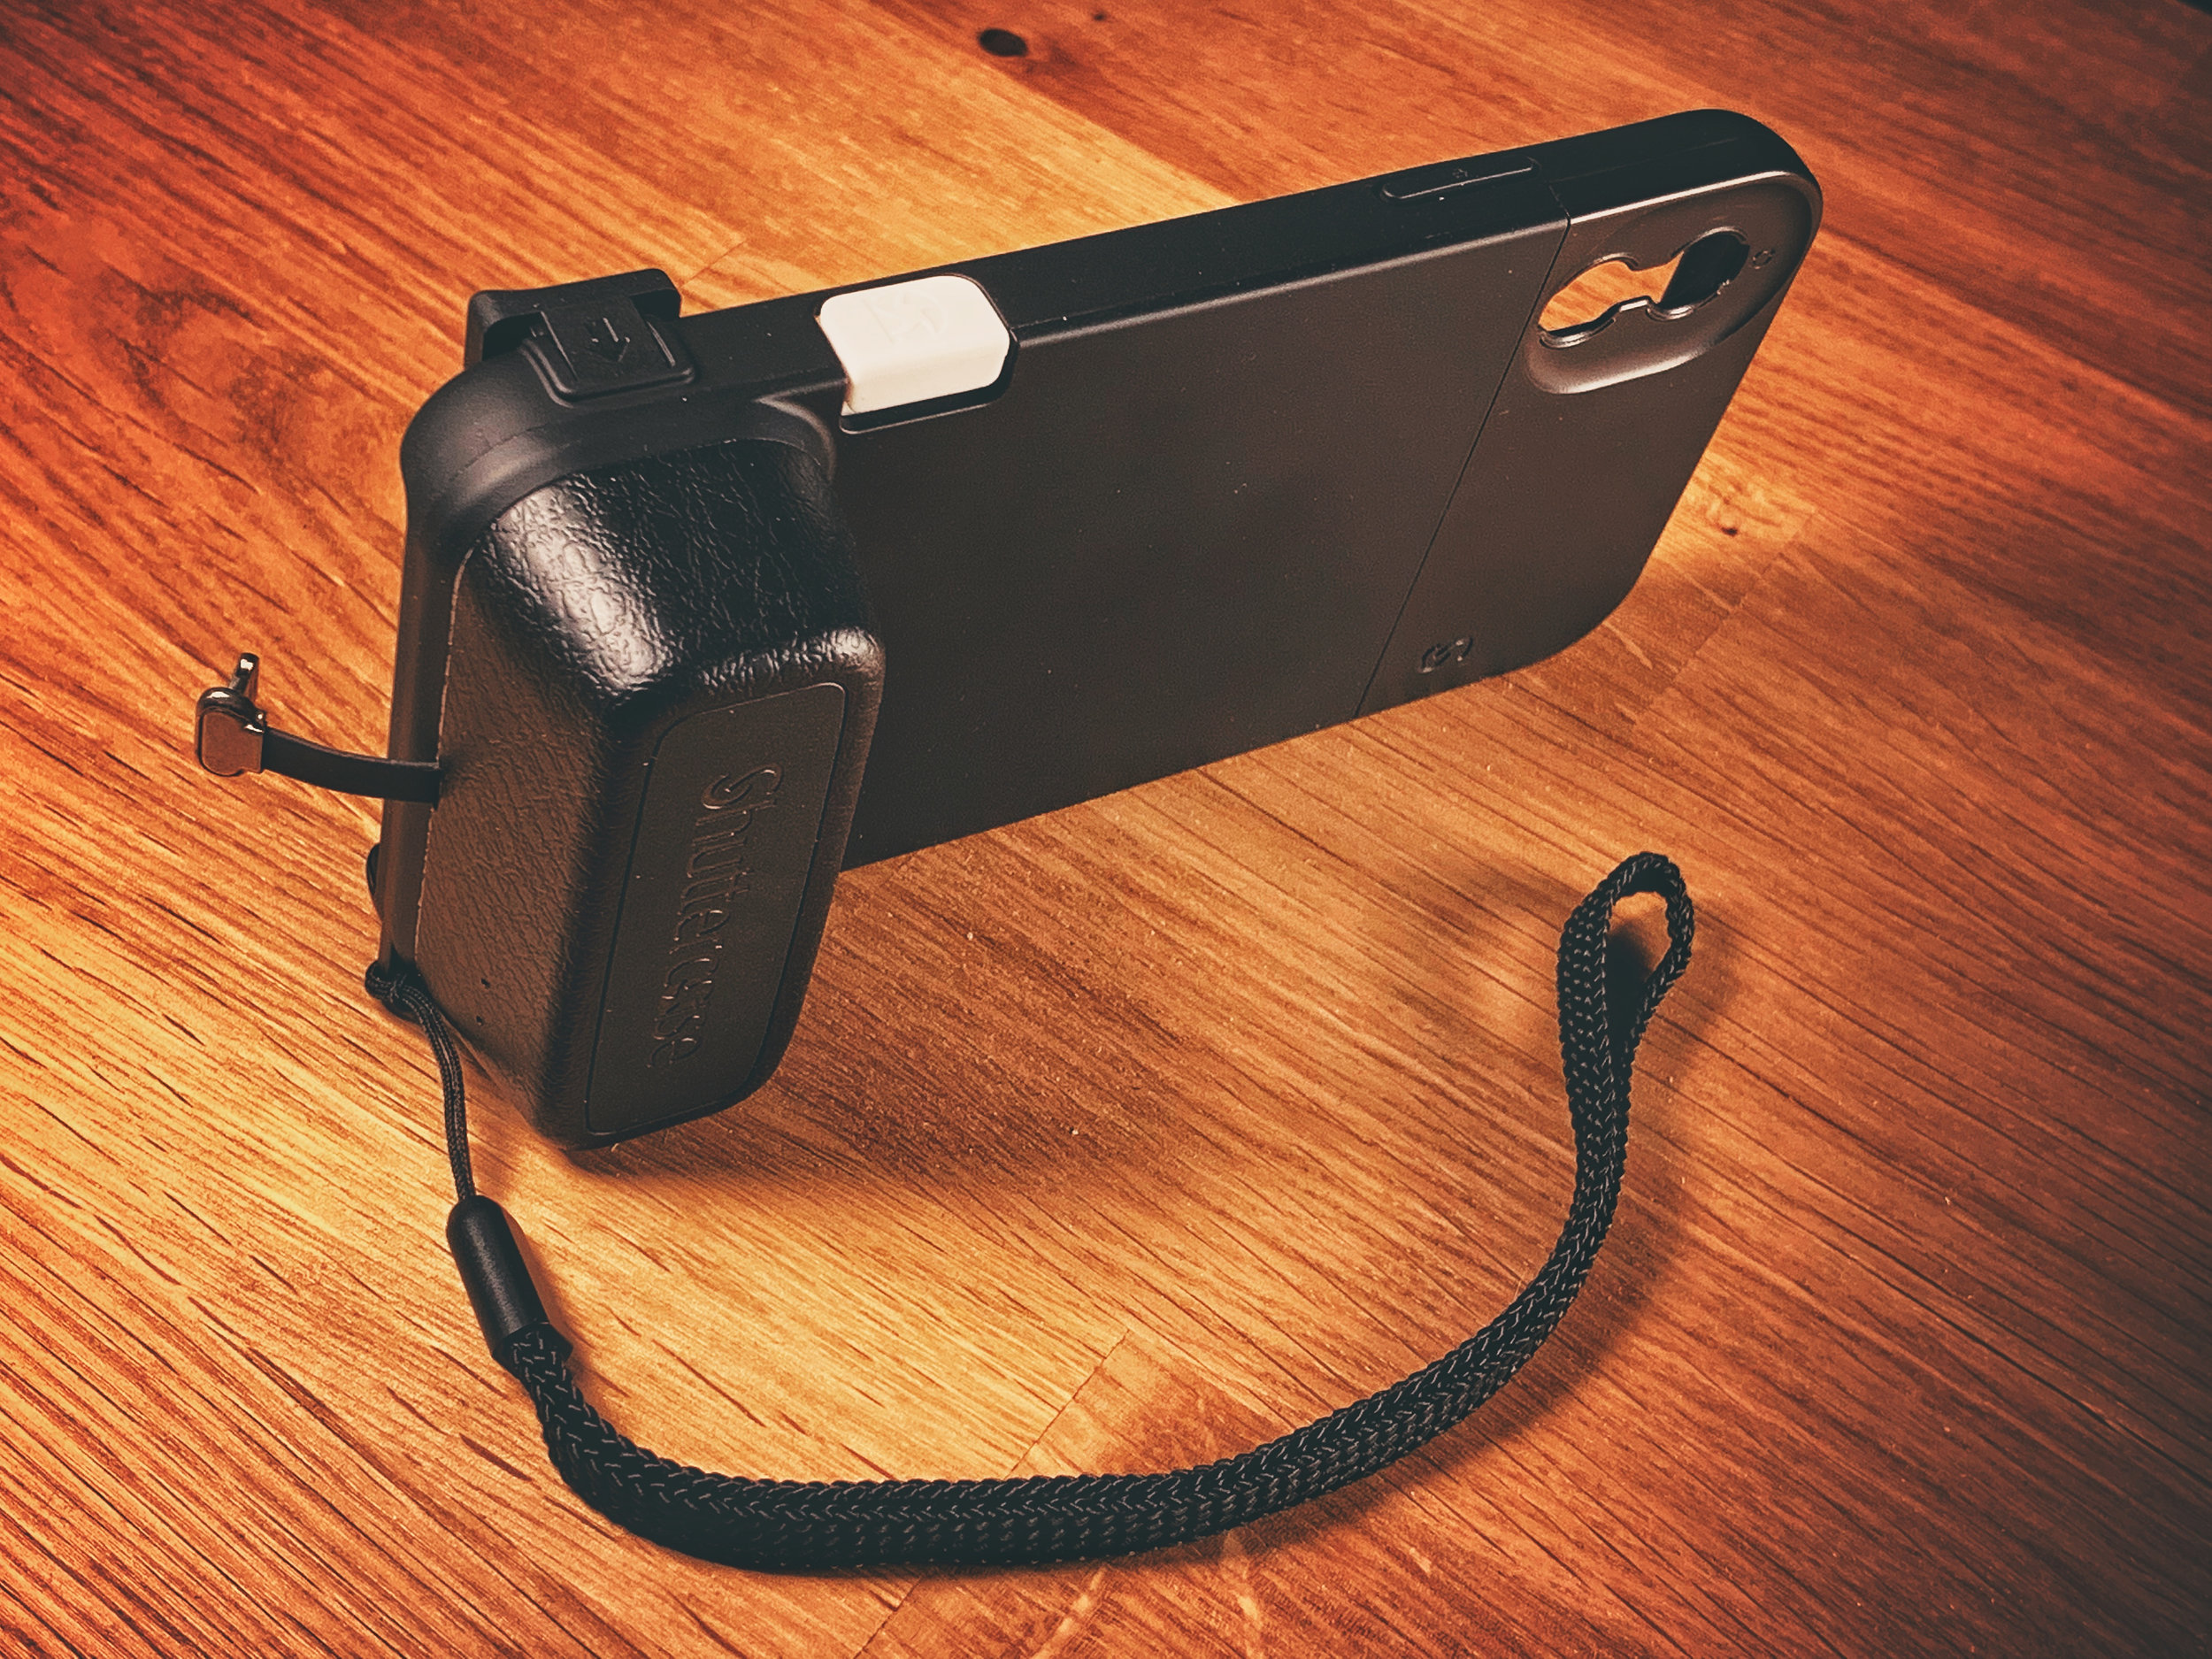 The Shuttercase features a battery grip, thumb grip, and a very convenient shutter button.